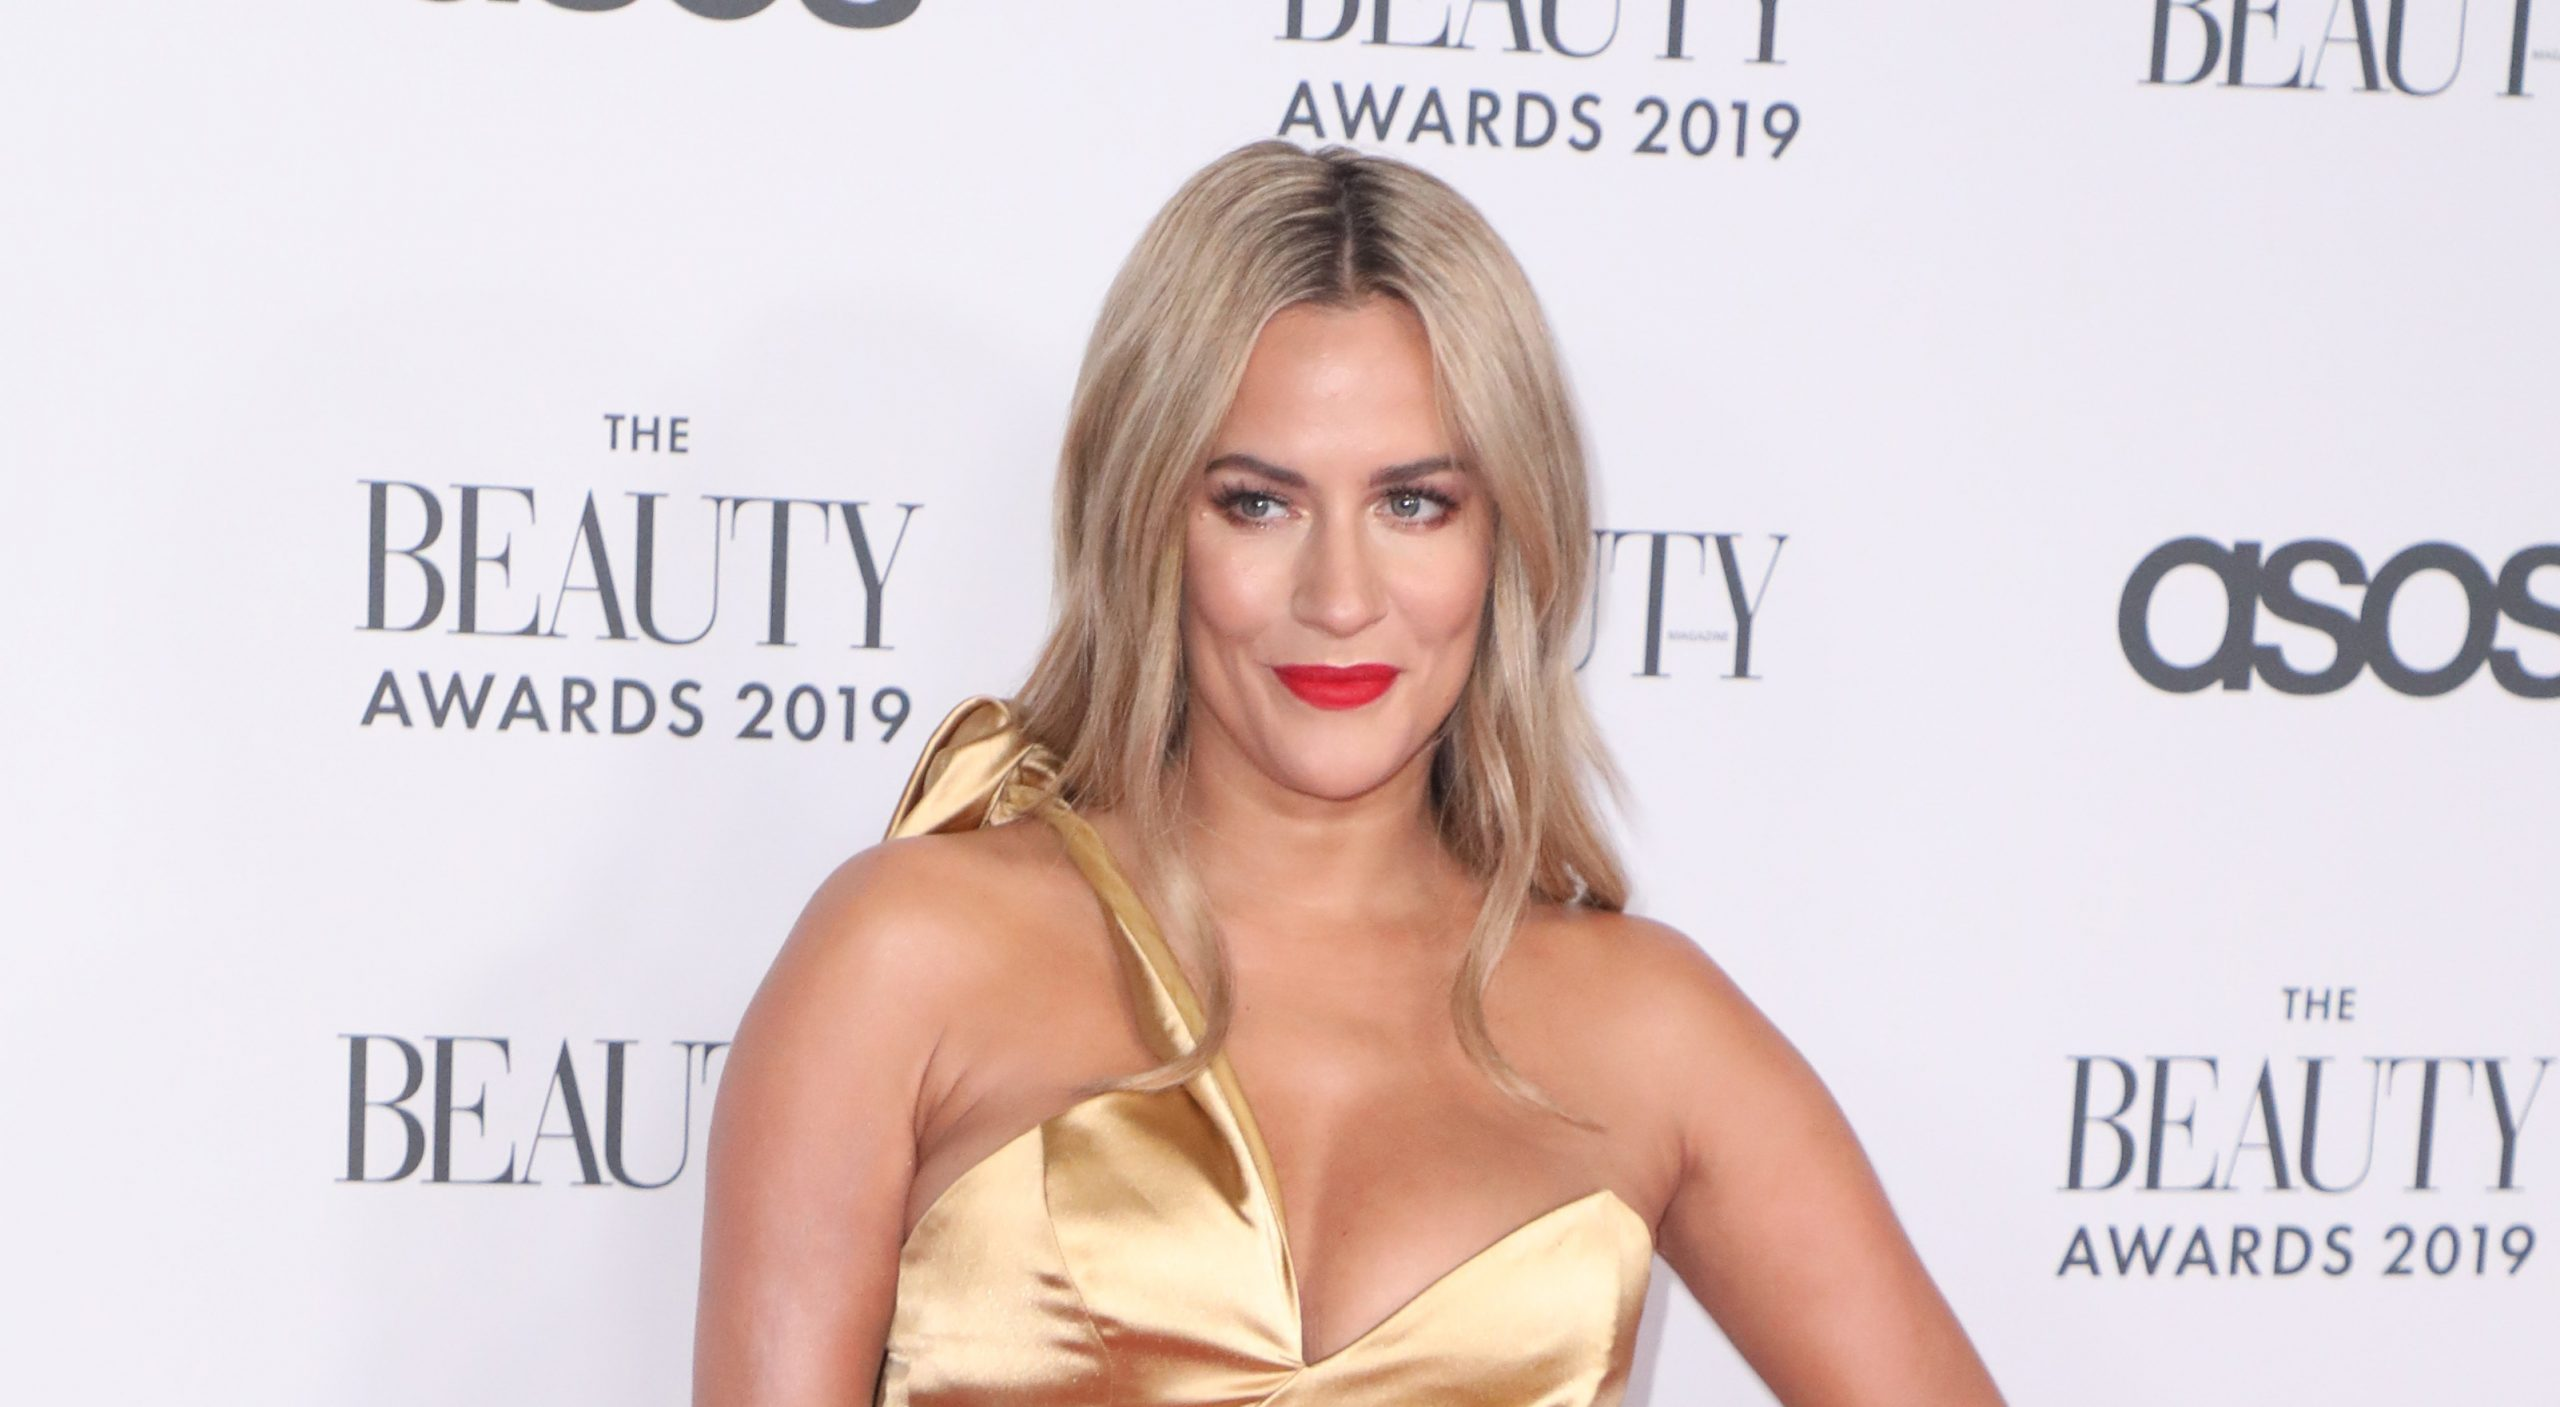 Fans in tears as London Underground-style board pays touching tribute to Caroline Flack